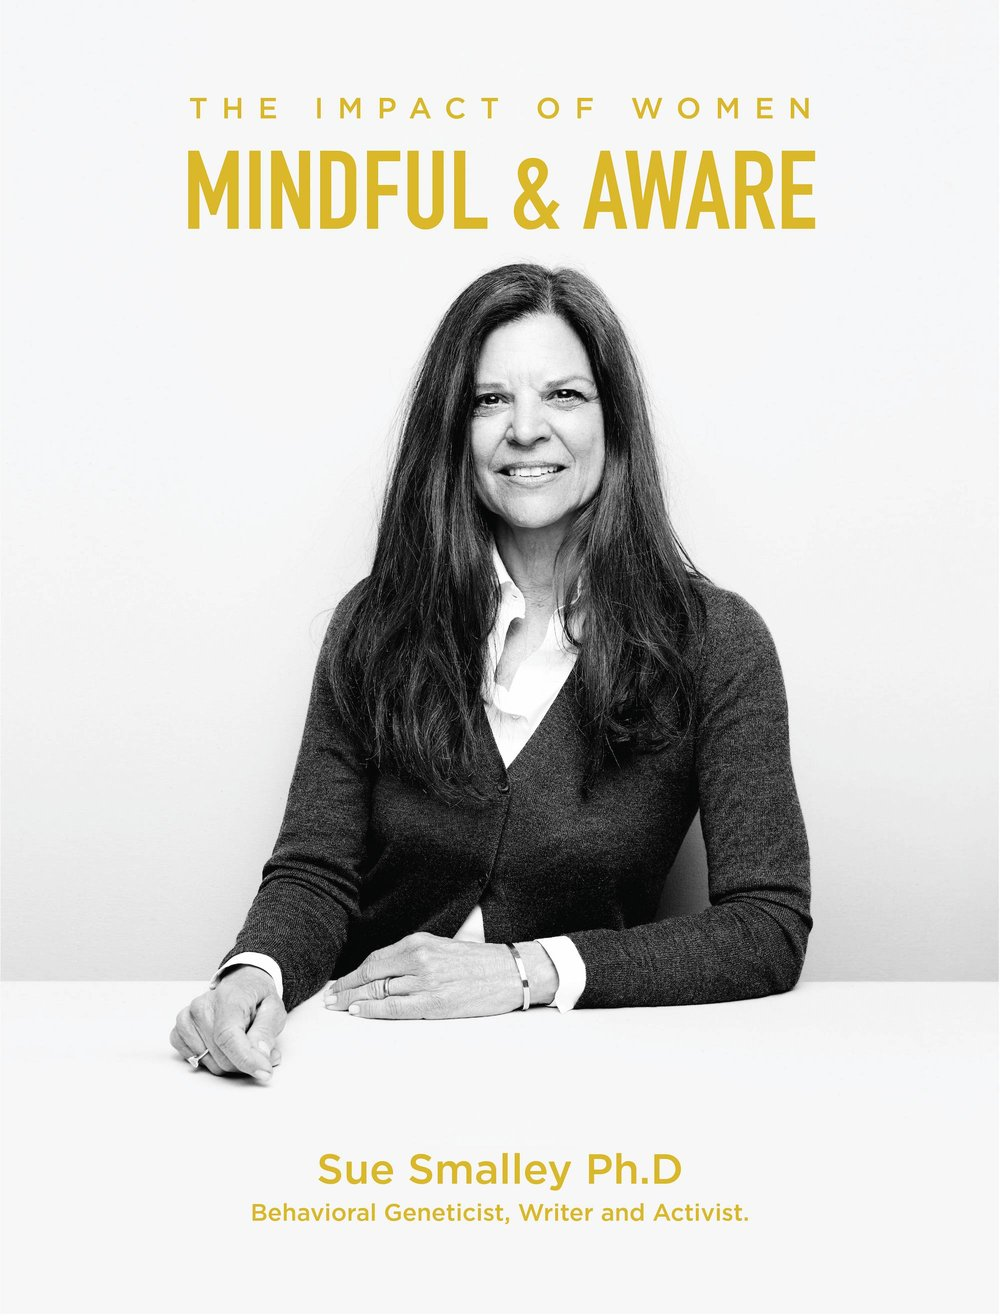 Susan Smalley is Mindful and Aware